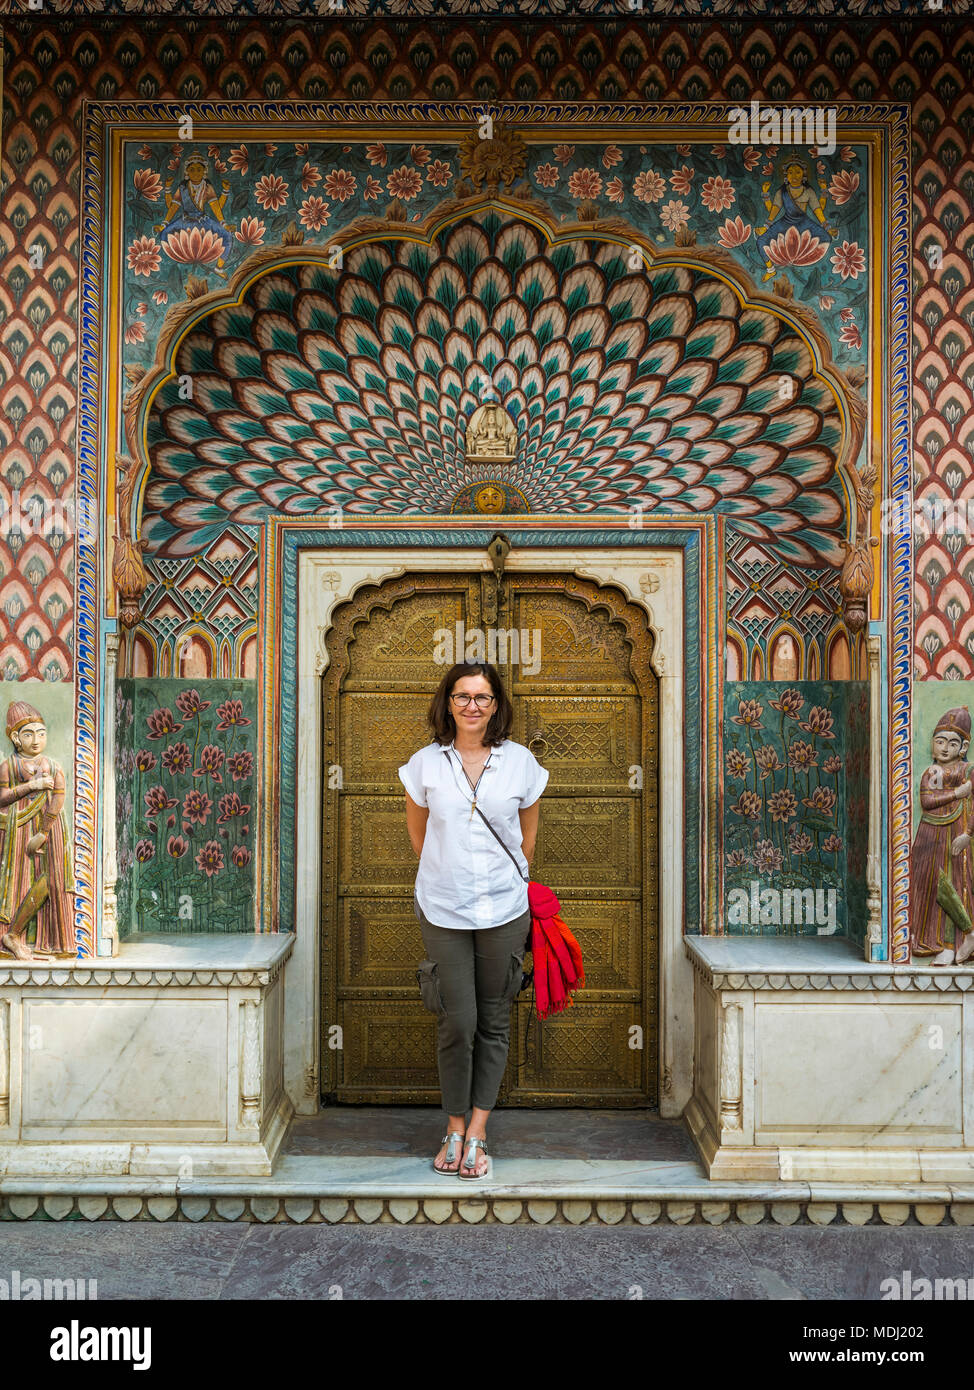 A female tourist stands in front of the Peacock Gate, City Palace; Jaipur, Rajasthan, India - Stock Image